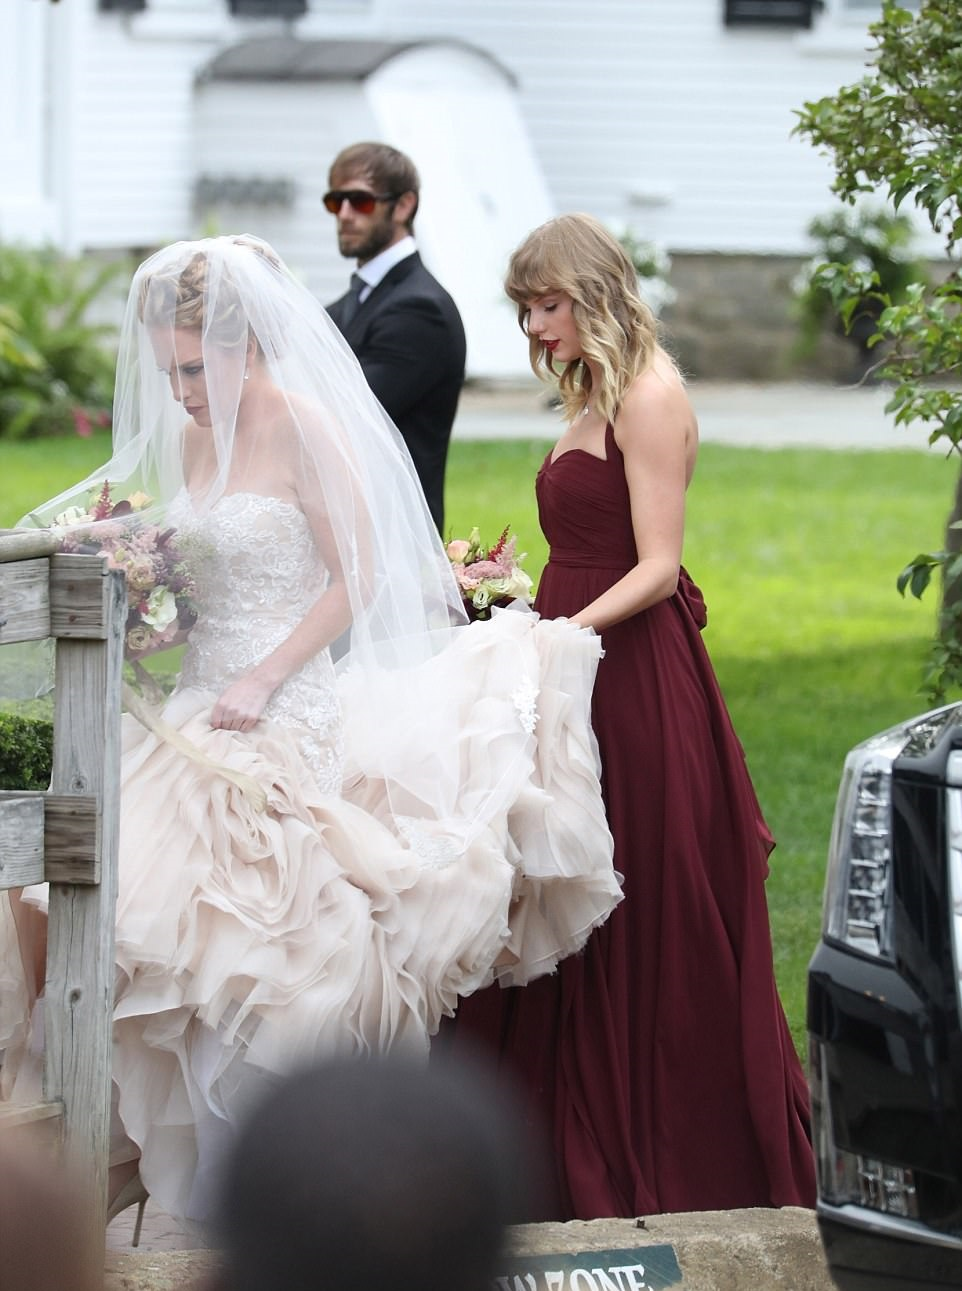 Taylor Swift Was Seen At Her Best Friend Aail Anderson S Wedding On Saay That The Same Who She Went To High School With And Wrote 2009